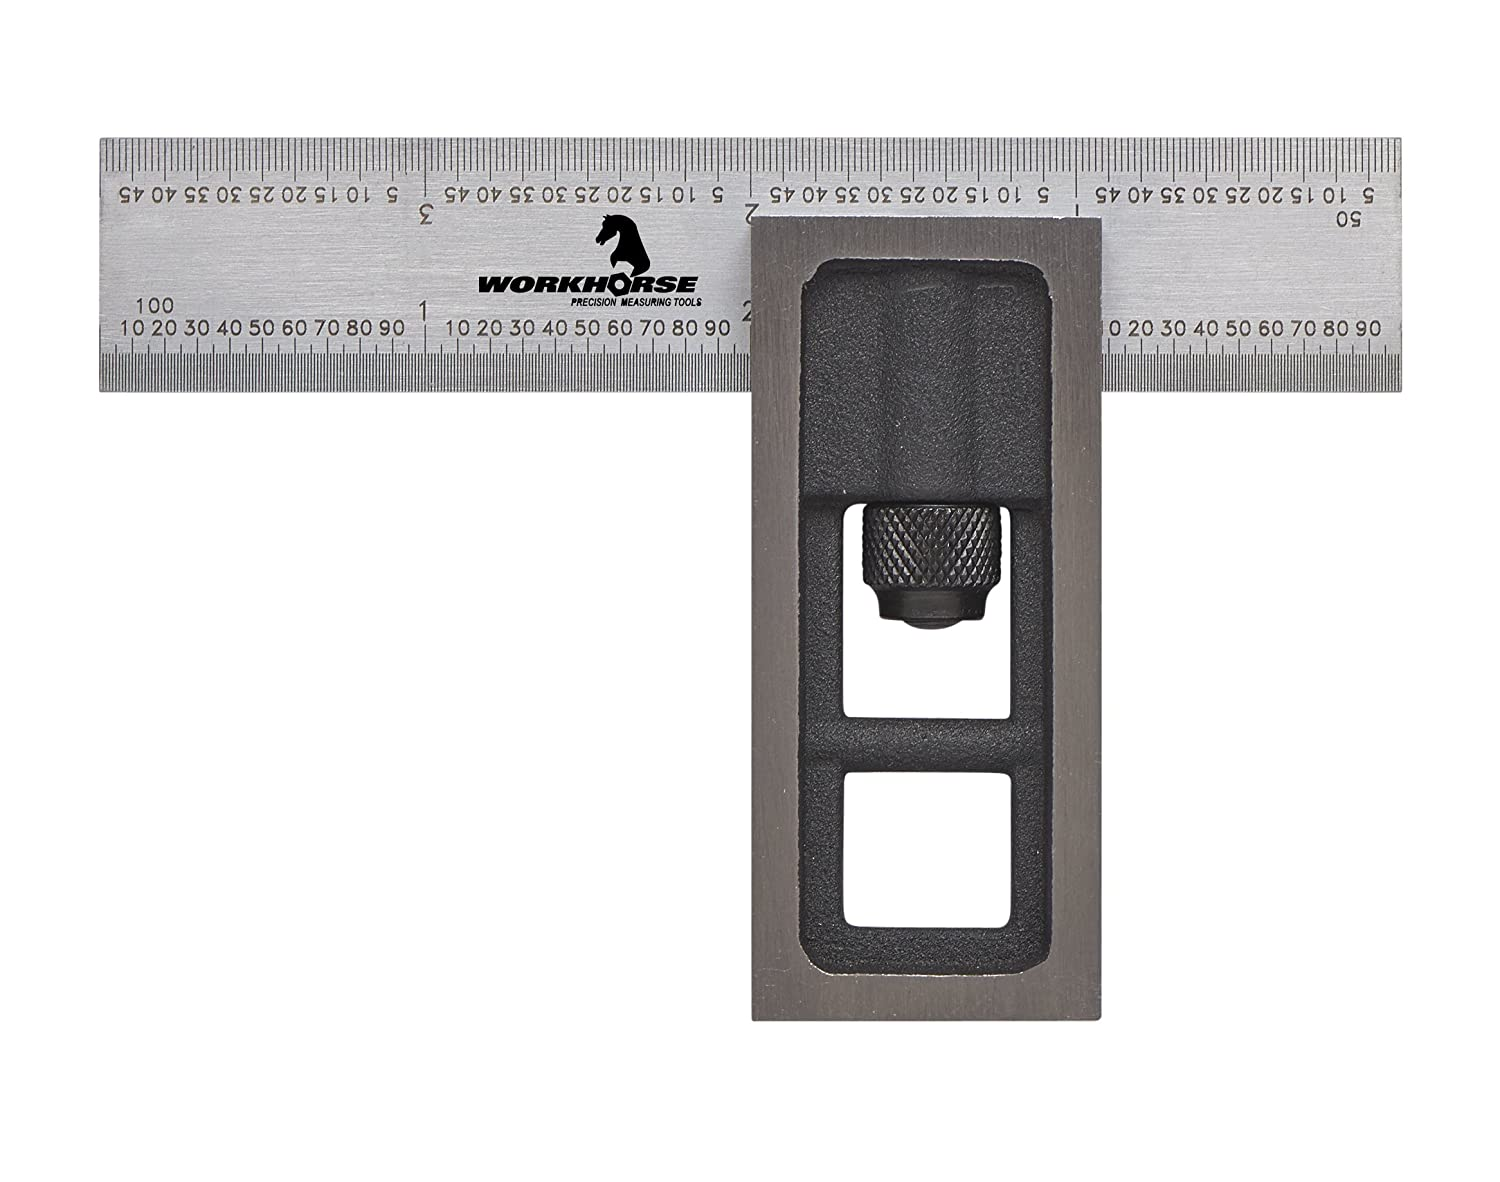 WORKHORSE 3049.25014658 Certified Precision Double Square, 4